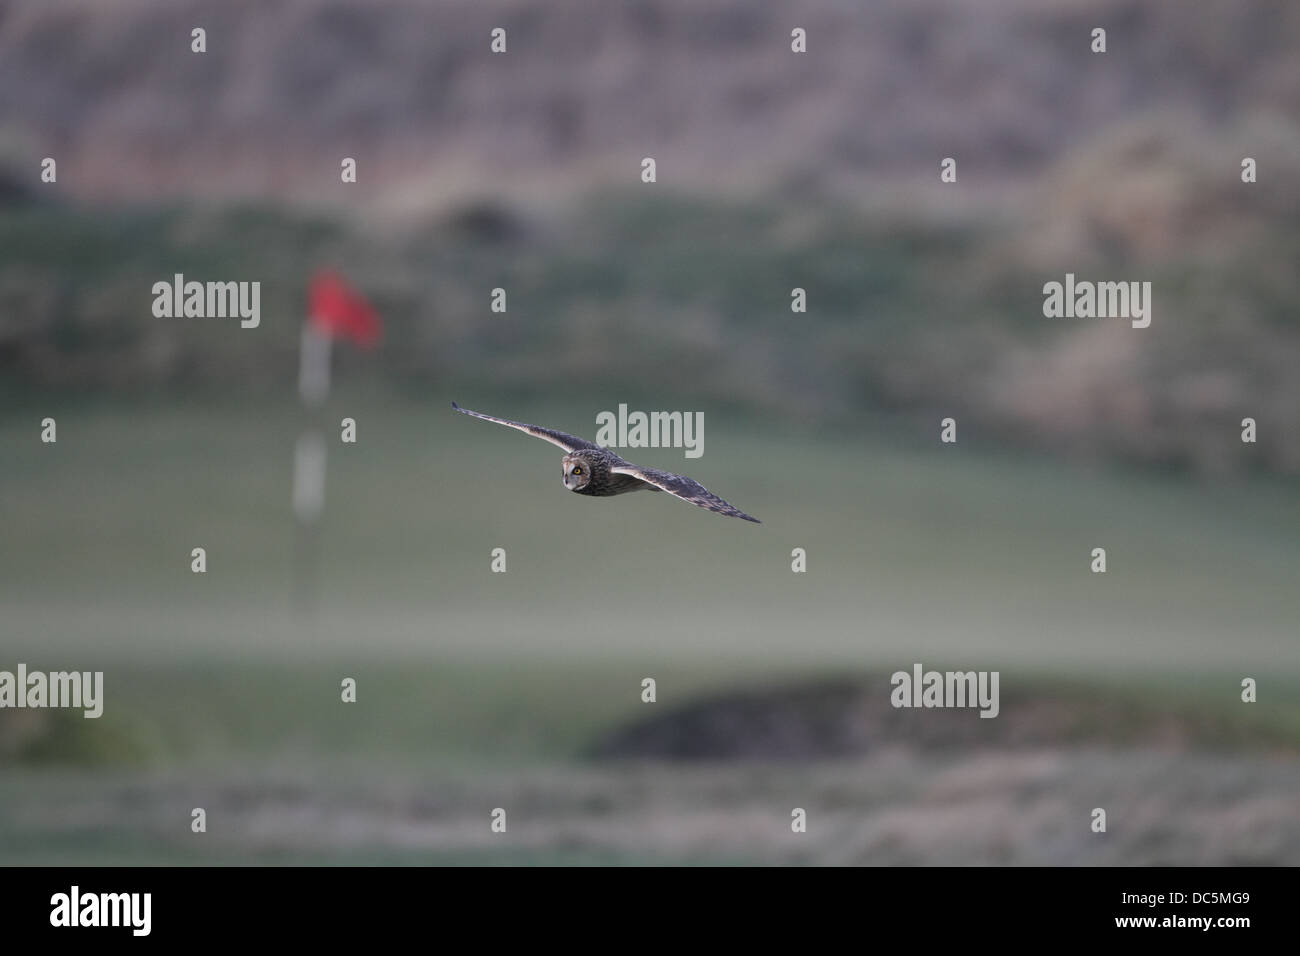 Short-eared Owl, Asio flammeus, flying over golf green - Stock Image